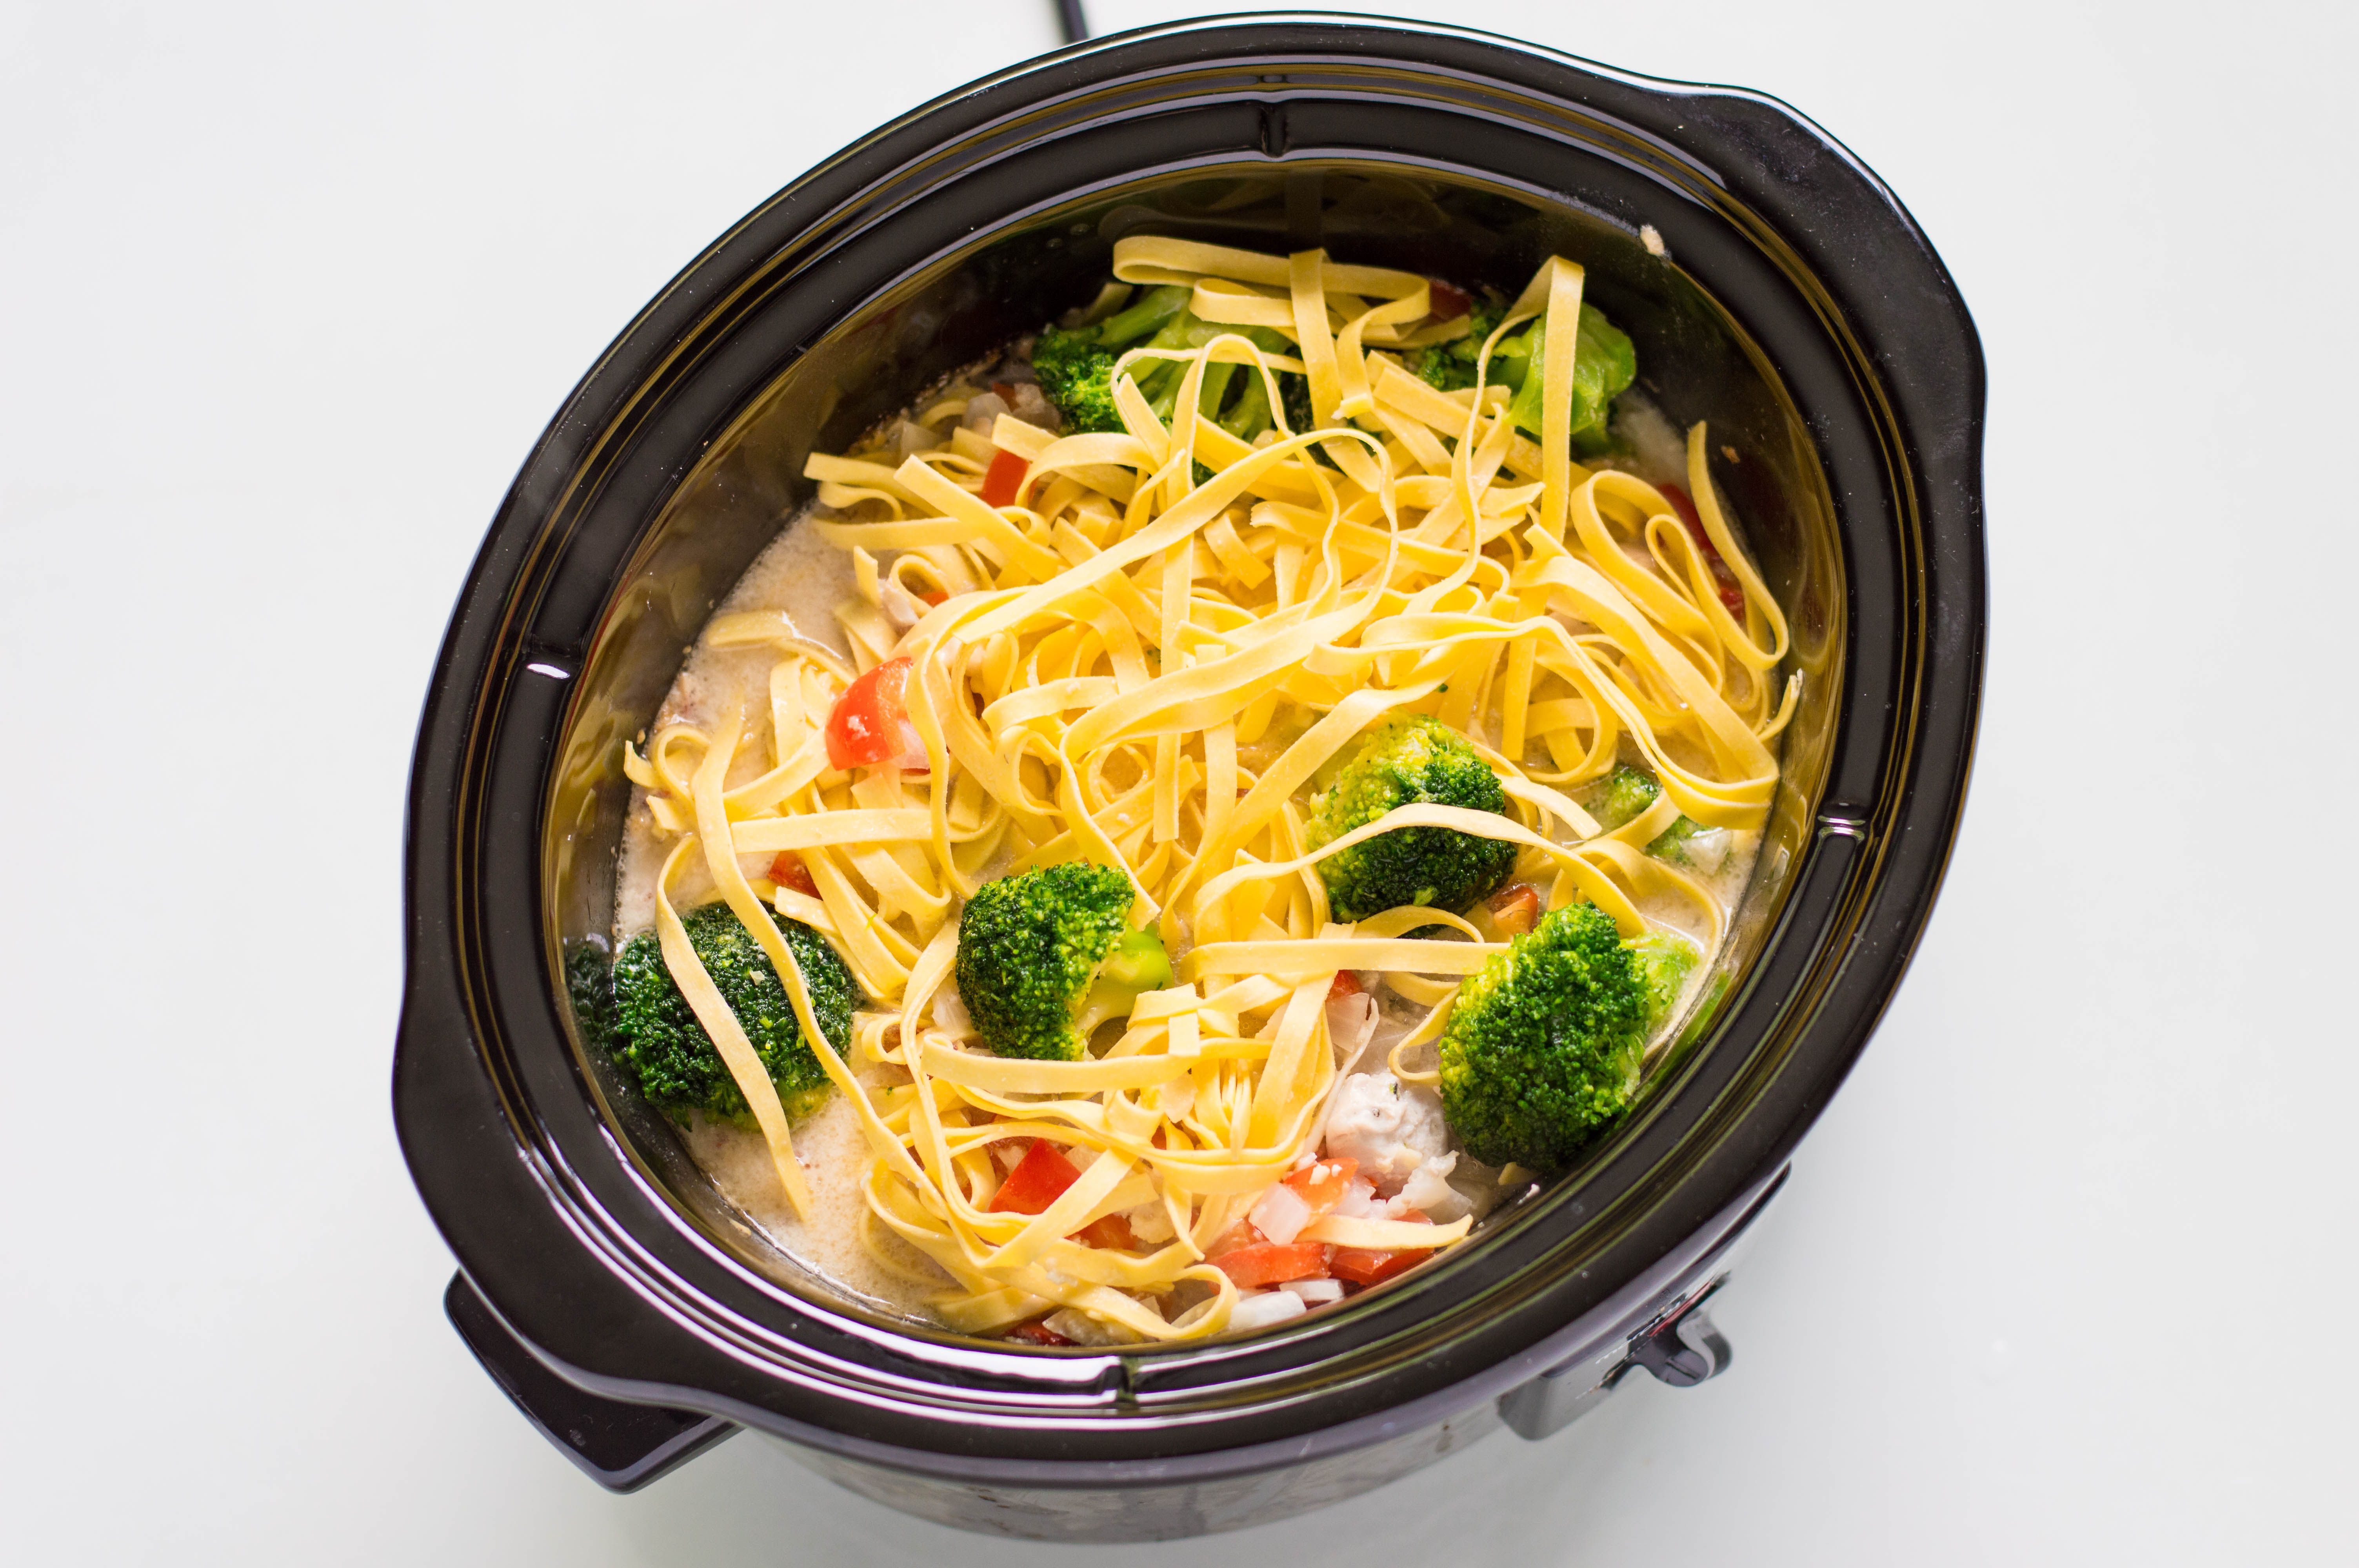 add broccoli and noodles